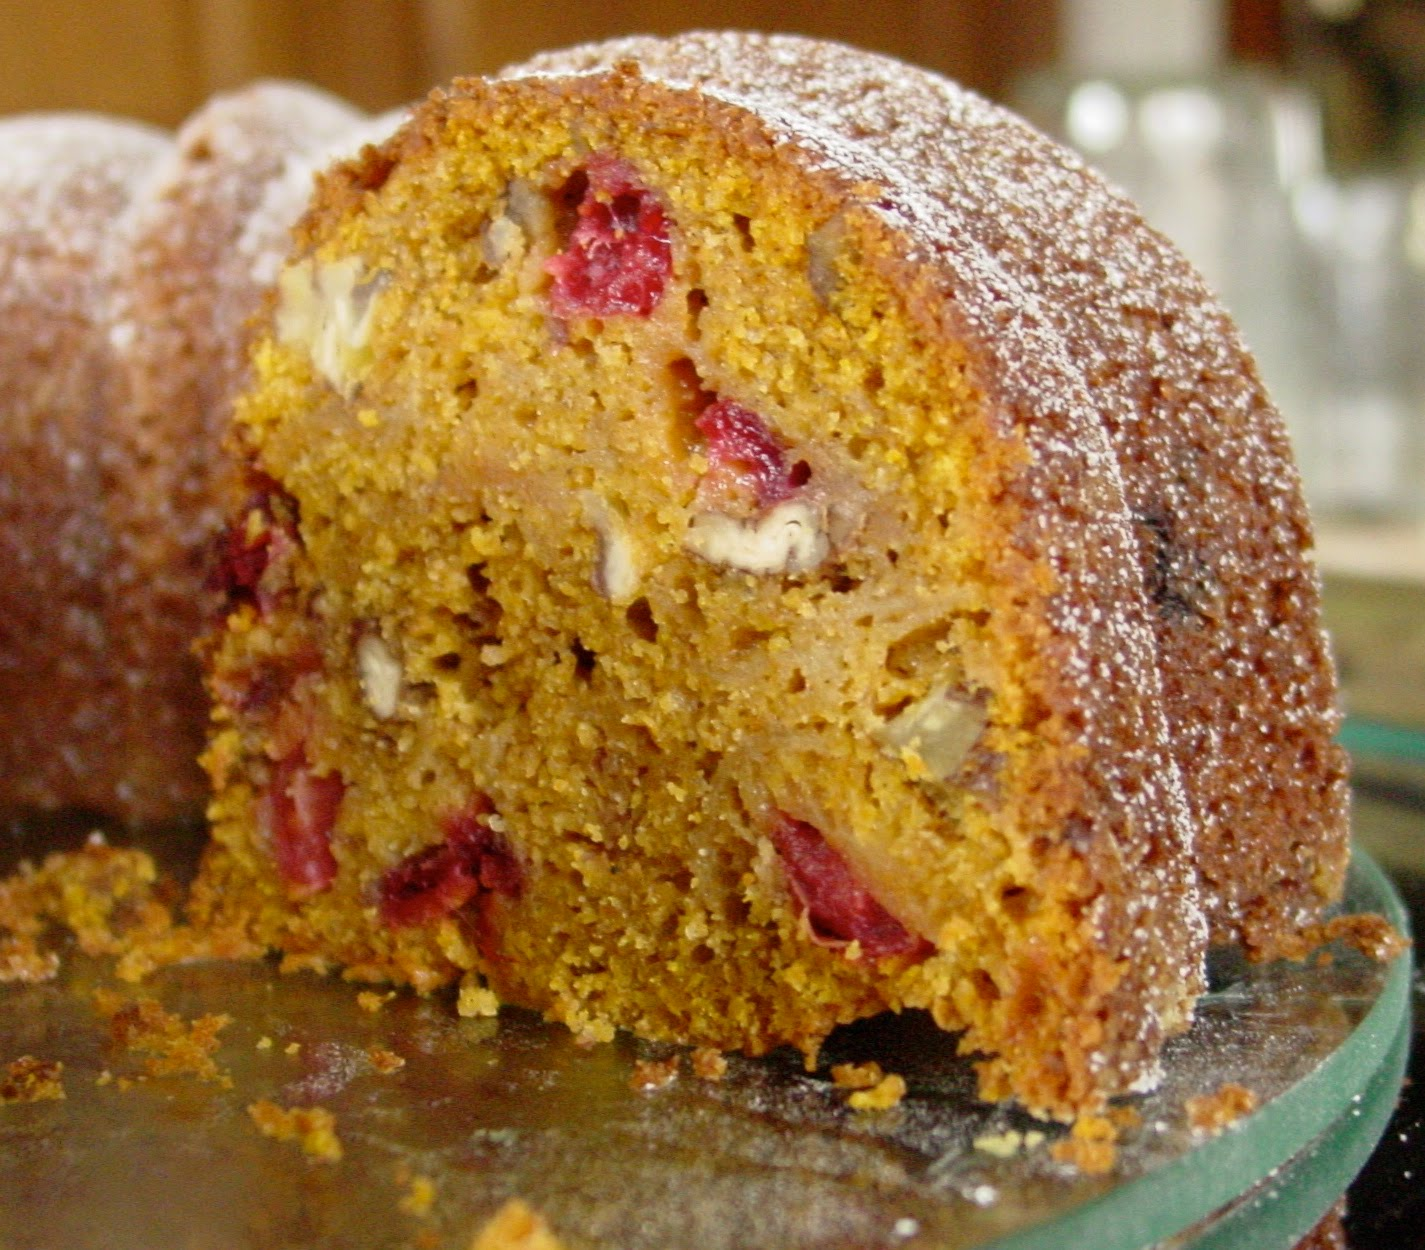 Bungalow Barbara: TWD: All-in-One Holiday Bundt Cake